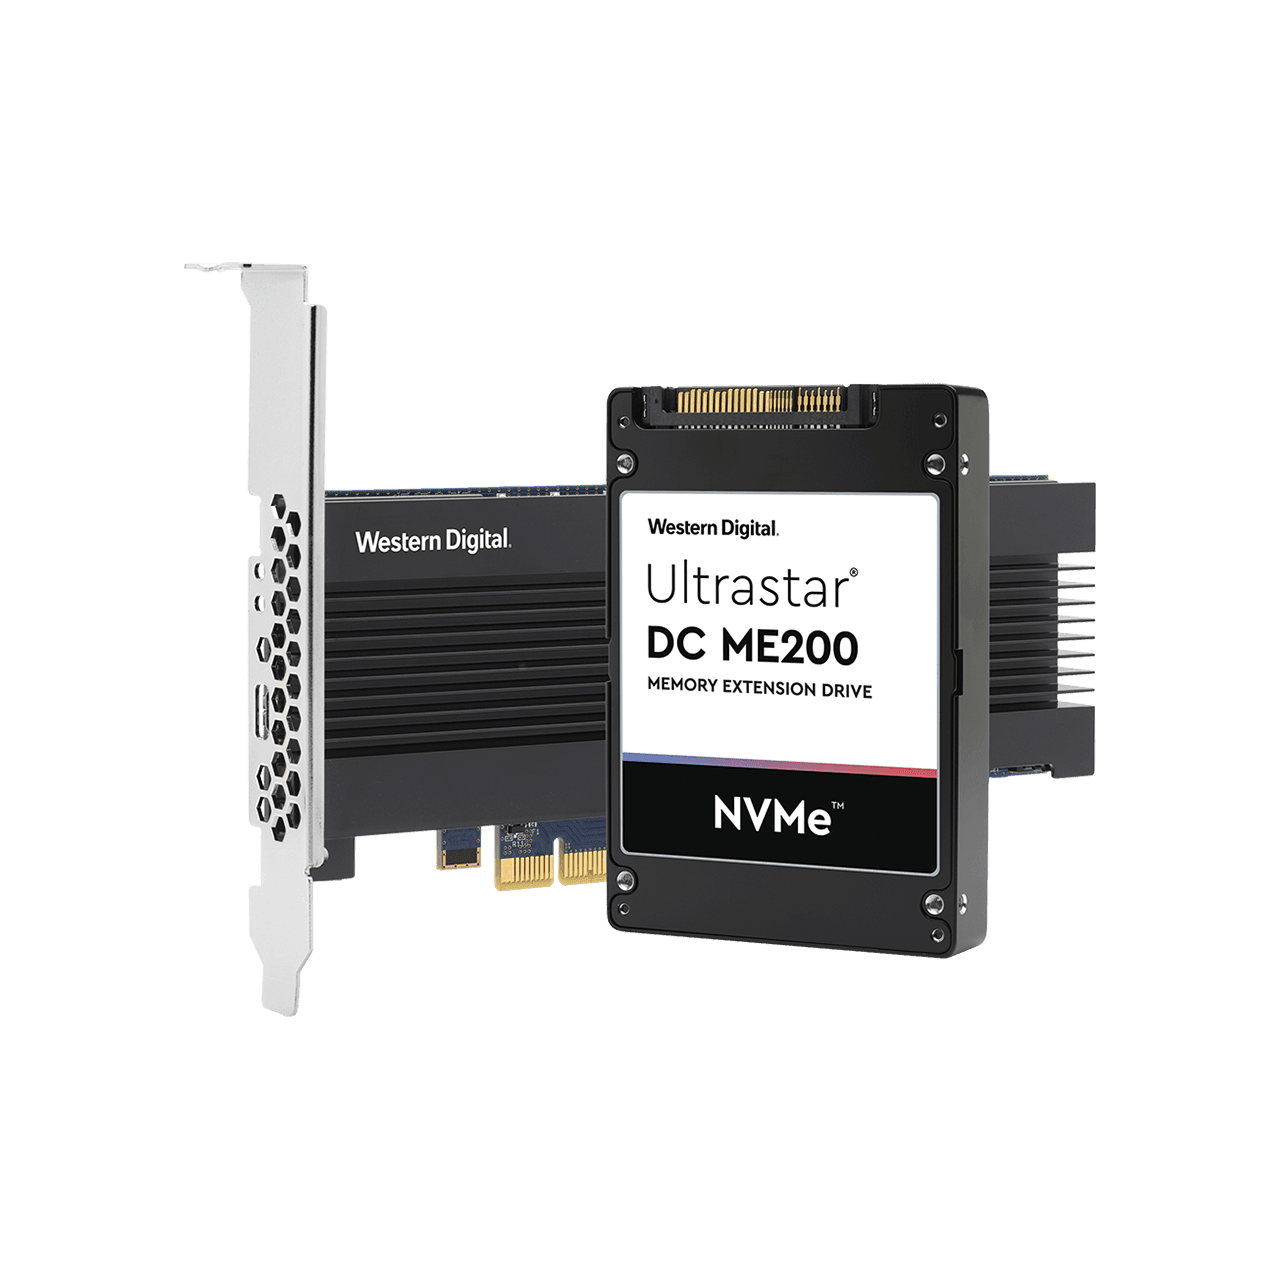 product-hero-ultrastar-dc-me200-western-digital-main